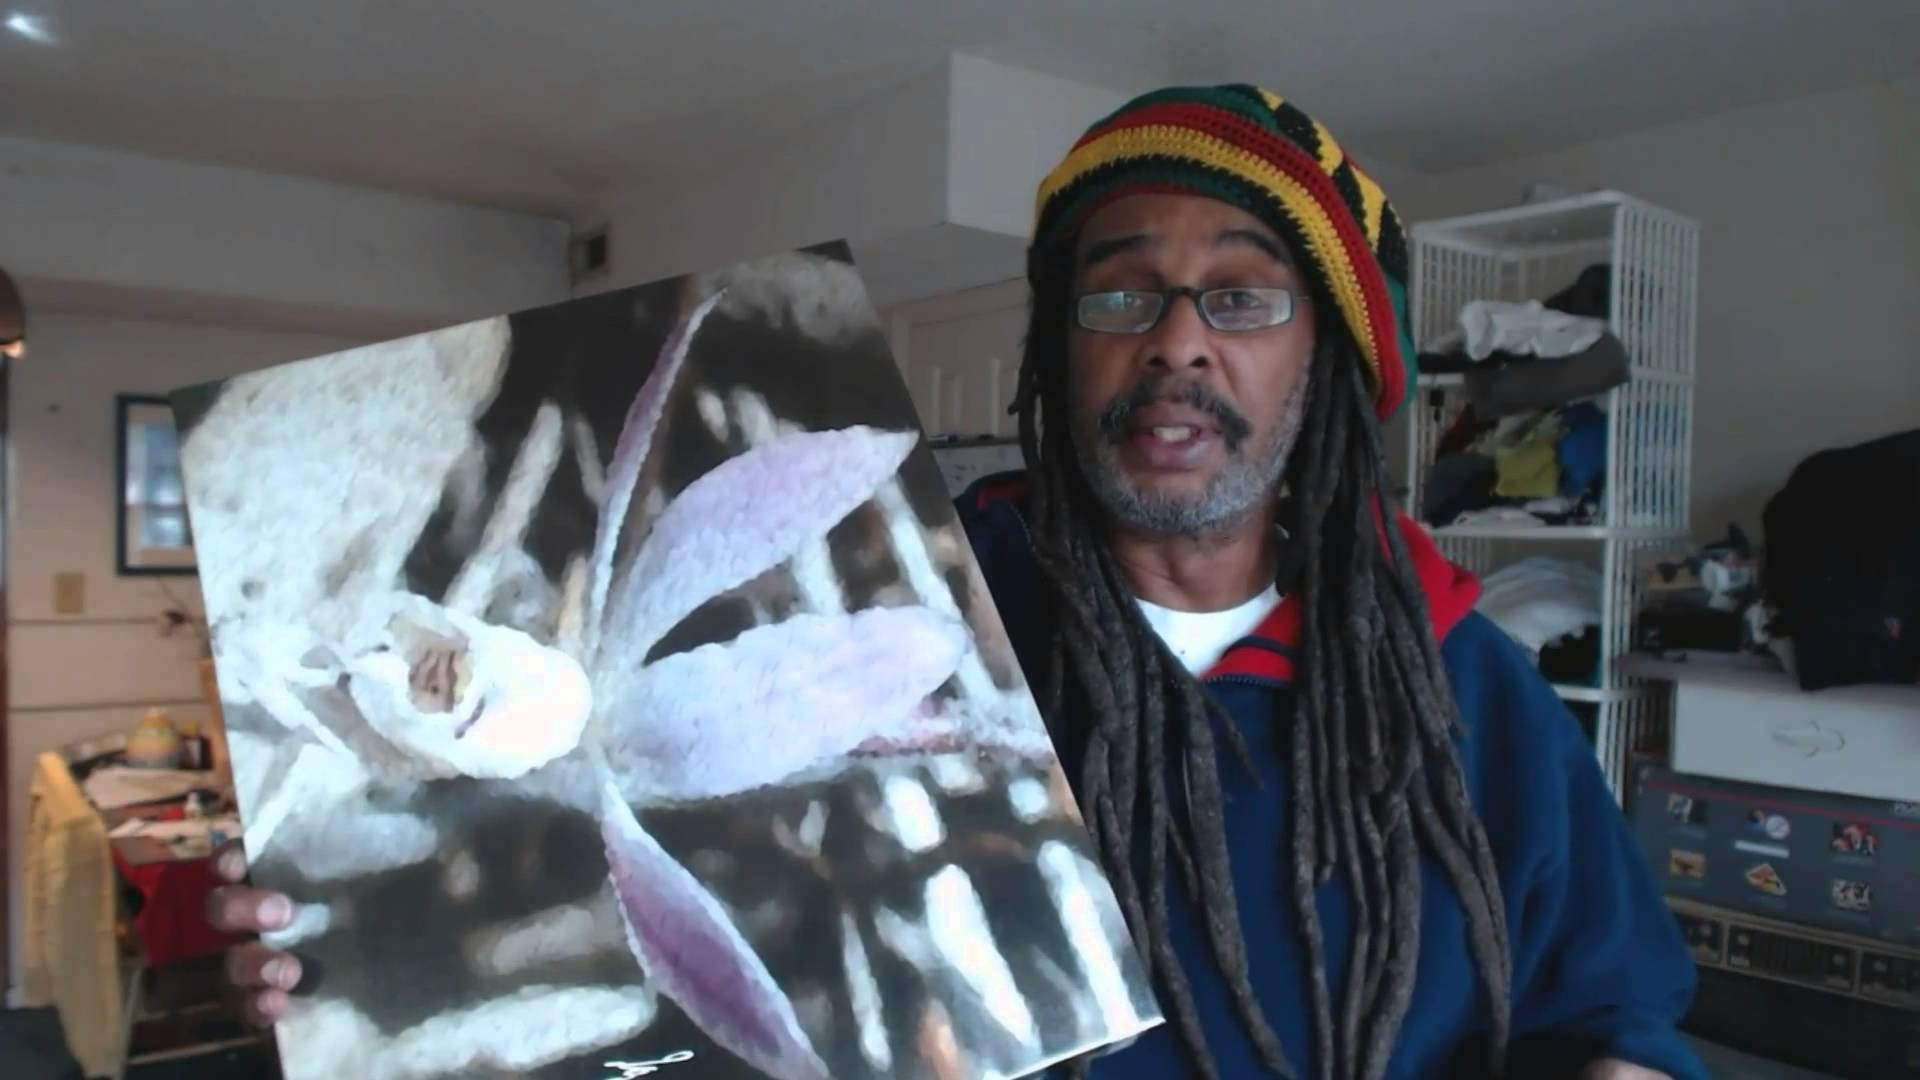 Picasso Goes To Walmart Unboxing Canvas And Wall Art – Youtube Pertaining To Popular Walmart Wall Art (View 9 of 20)